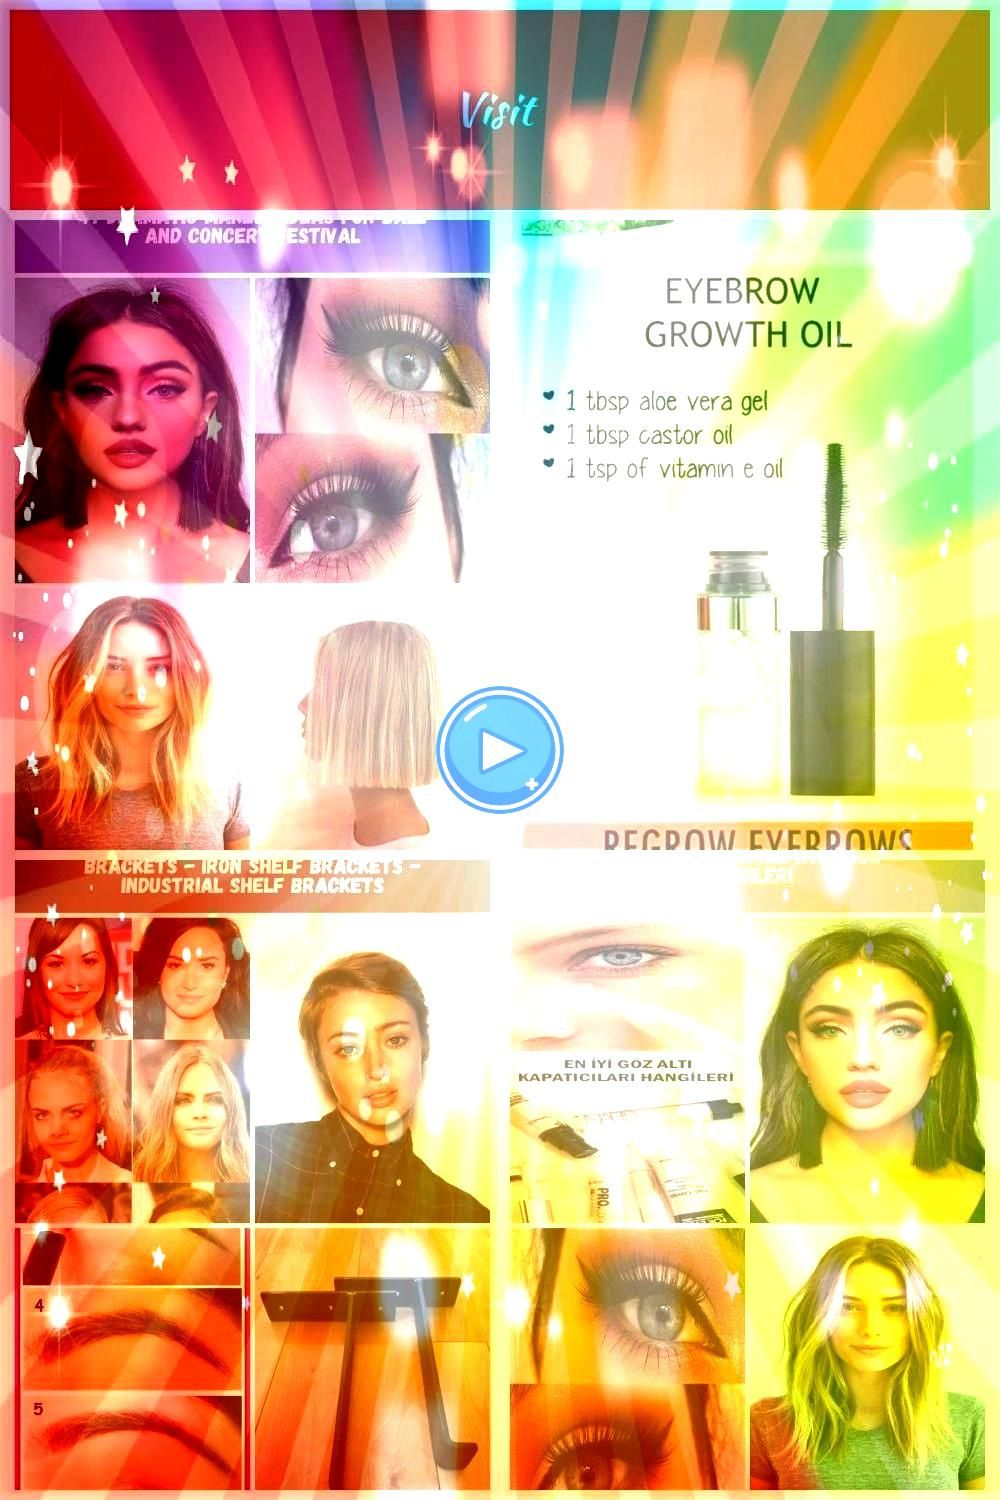 is a best time to play with makeup festive season it is Dicke lippe 47 Dramatic Makeup Ideas for Ball and Concert Festival Dicke lippeIf there is a best time to play with...